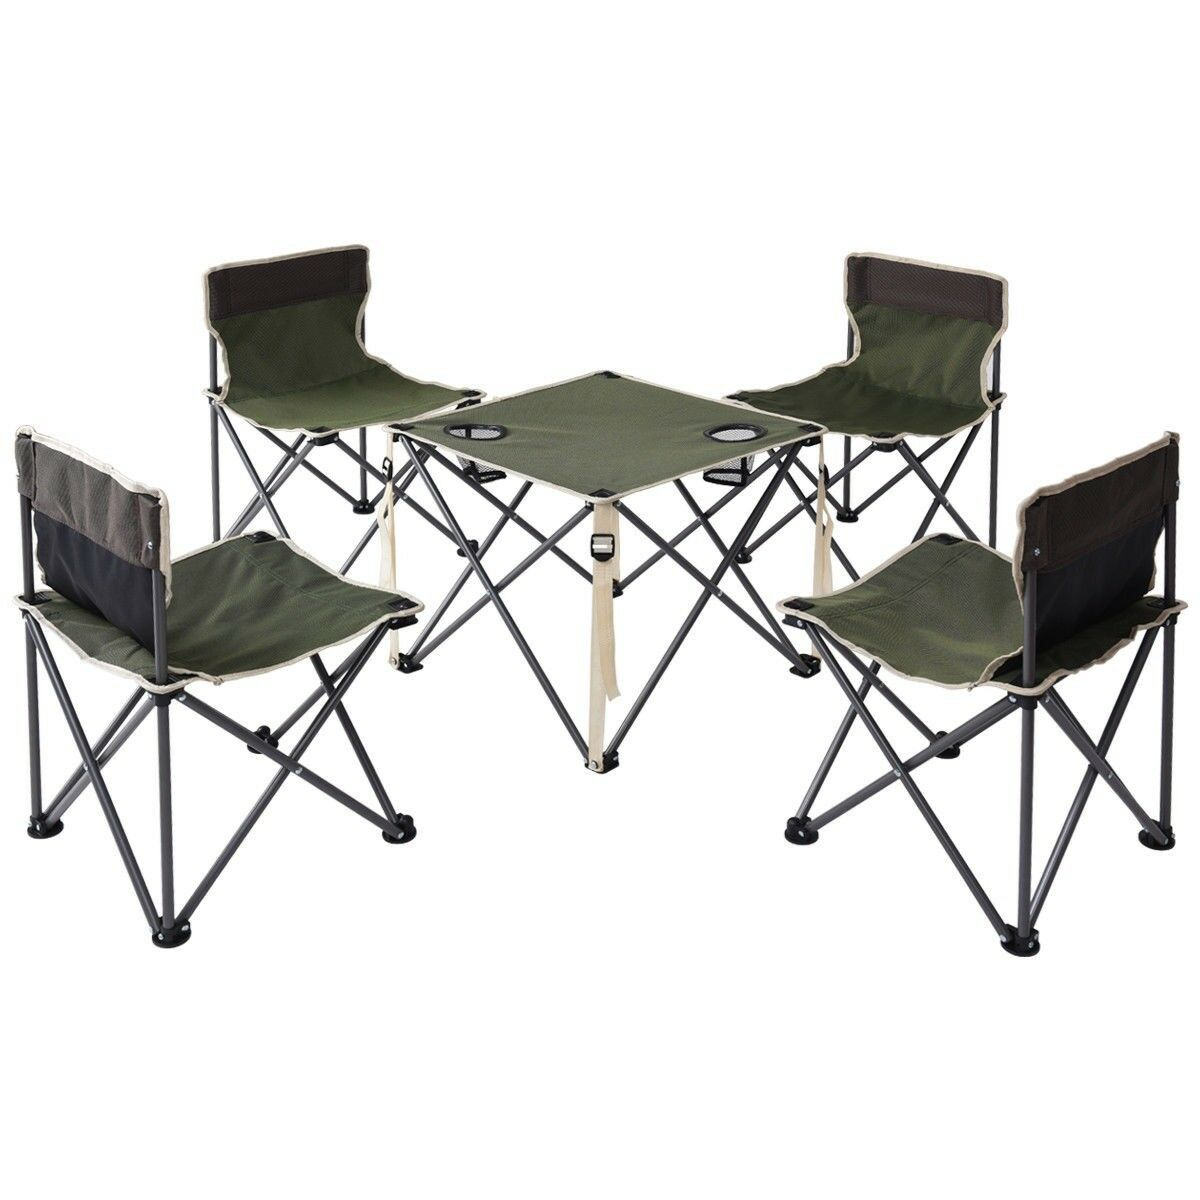 Camping Table And Chairs.Details About Folding Camping Table Chairs Portable Picnic Foldable Seats Outdoor Carrying Bag